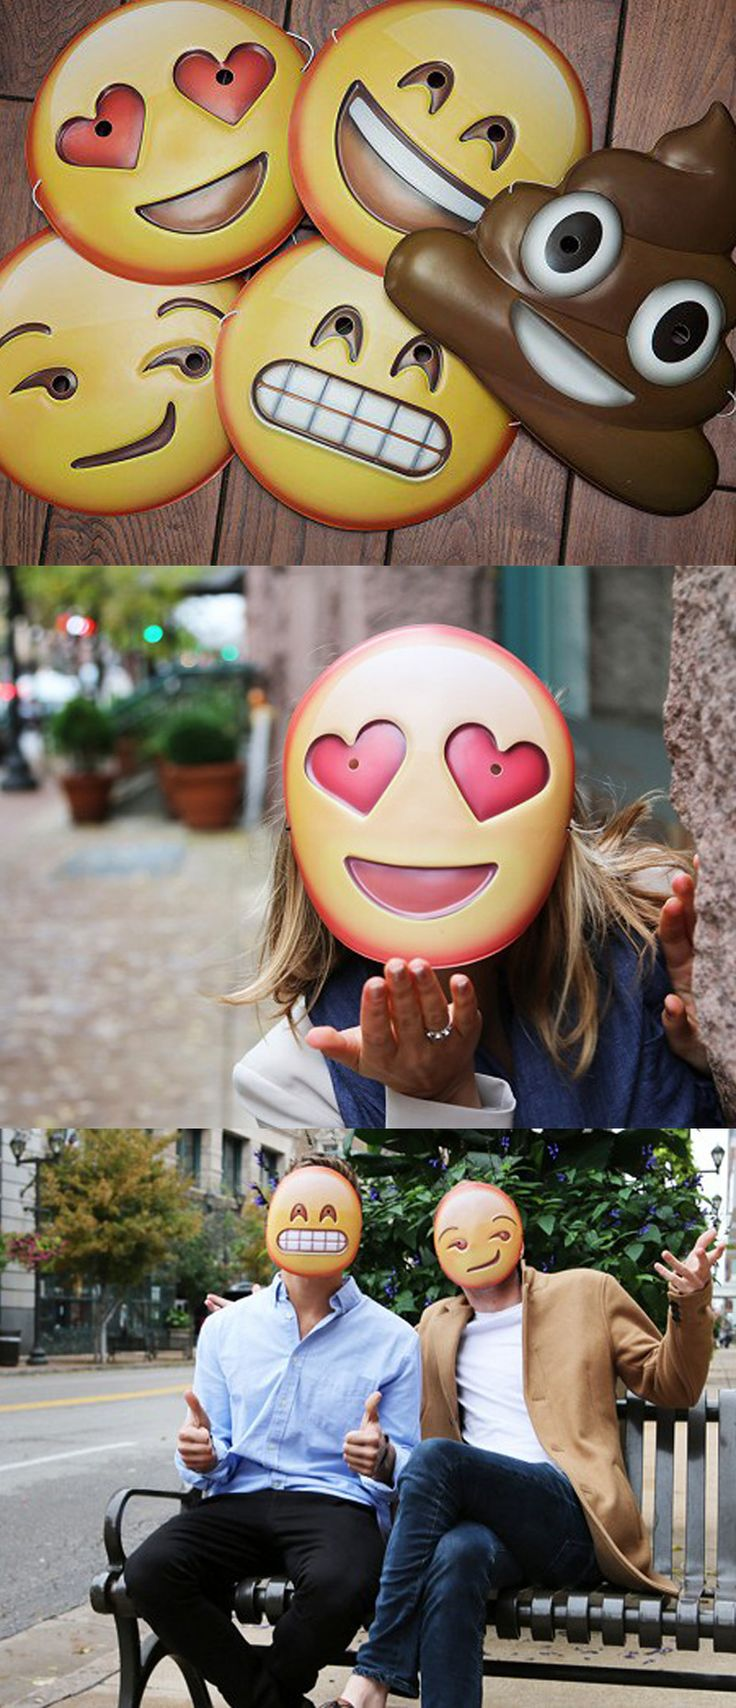 Bring your favorite emoji to life with Emoji Masks. These fun, engaging masks let you wear some of the most popular emoji on your face.